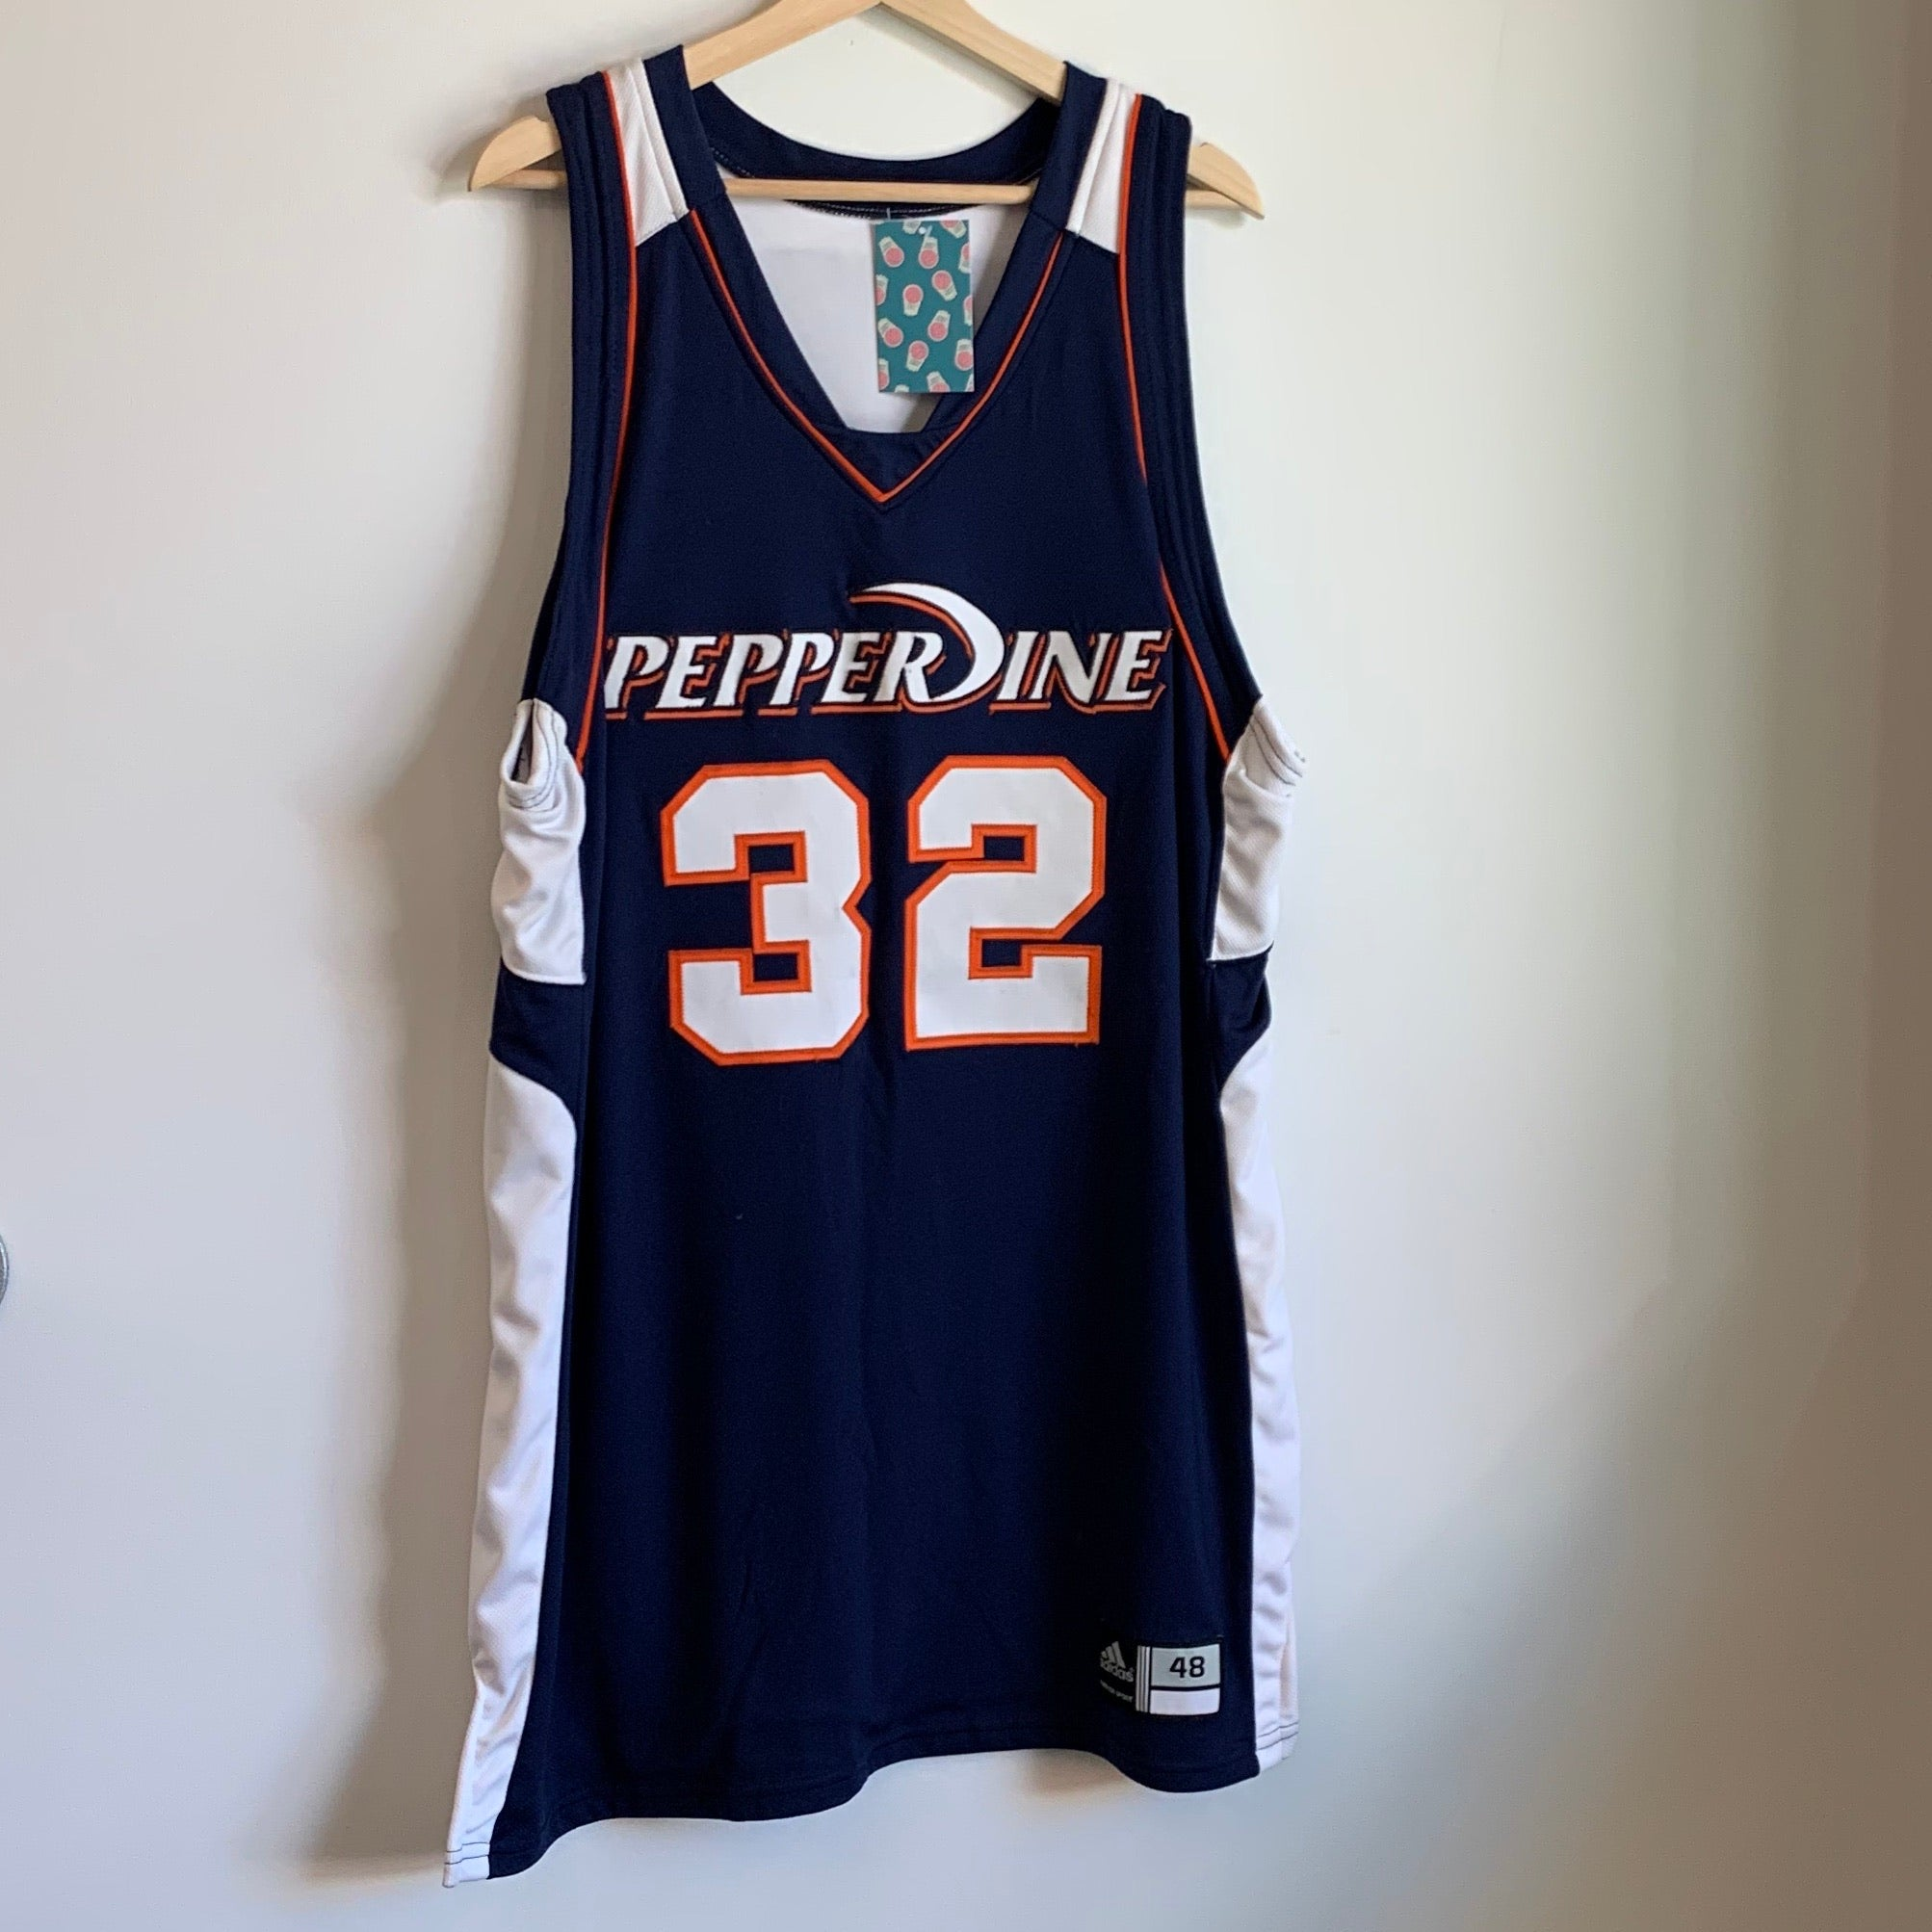 Adidas Pepperdine Waves Navy Authentic Basketball Jersey